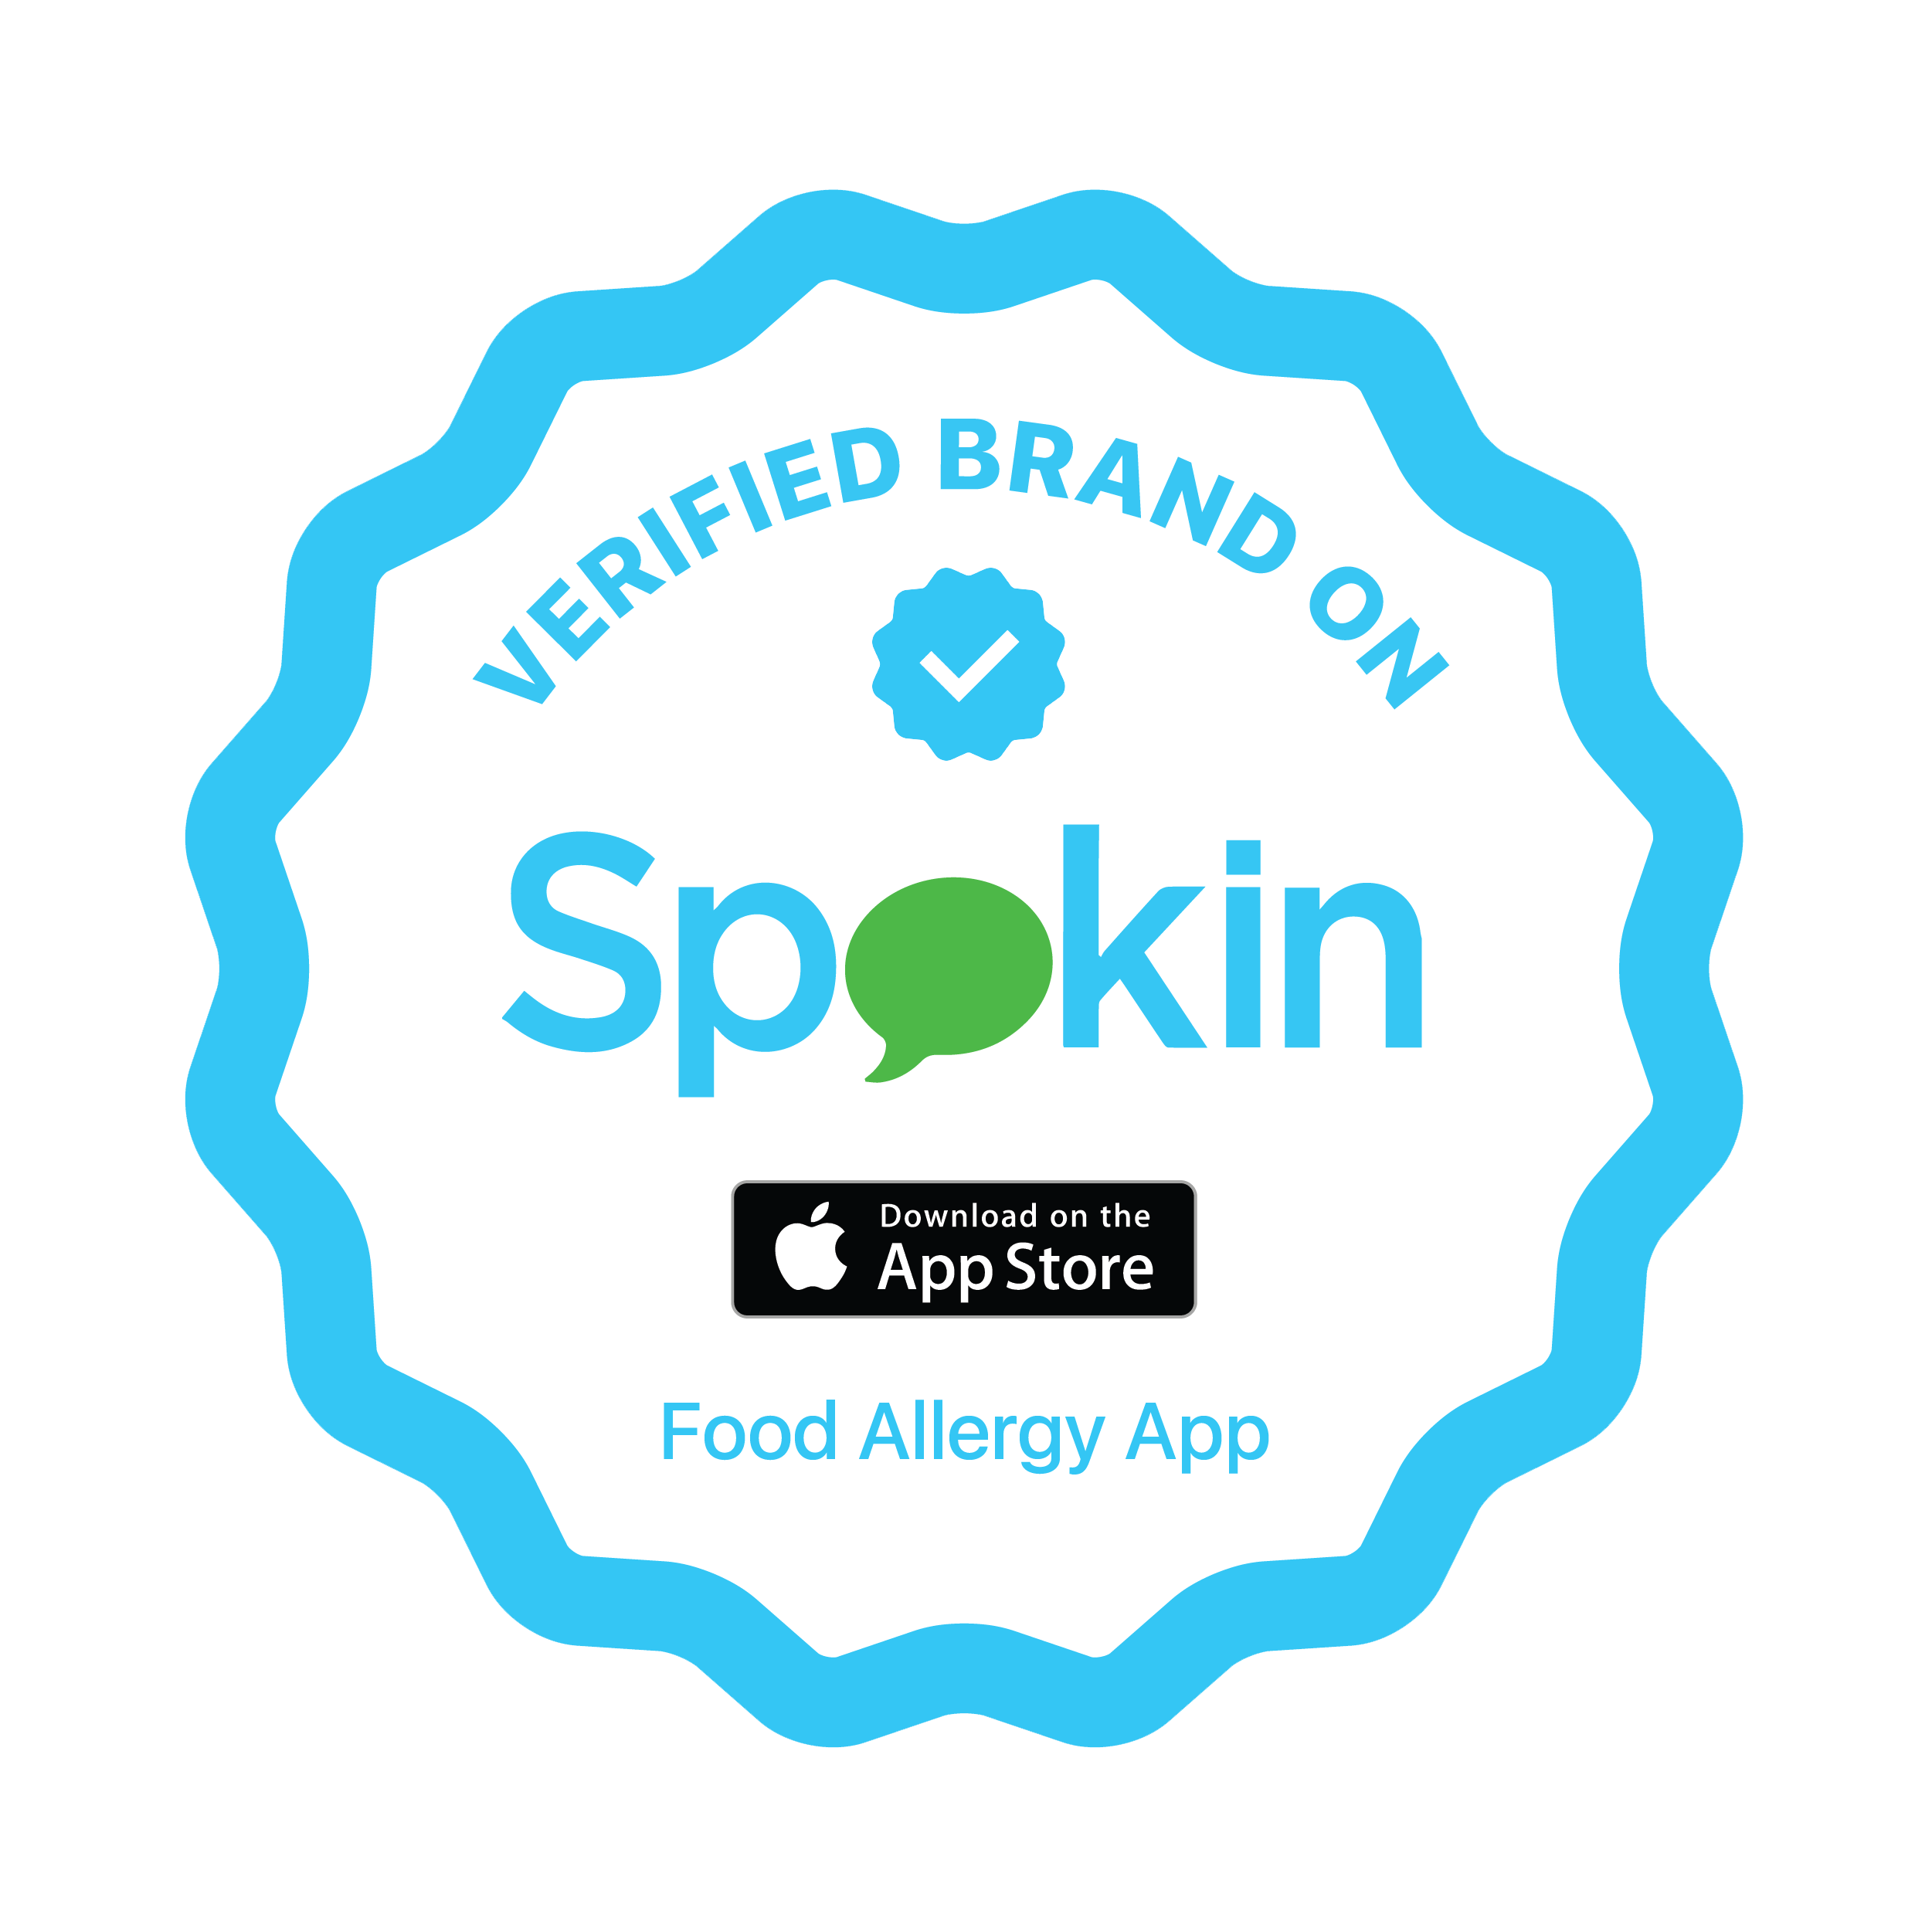 Spokin verified brand